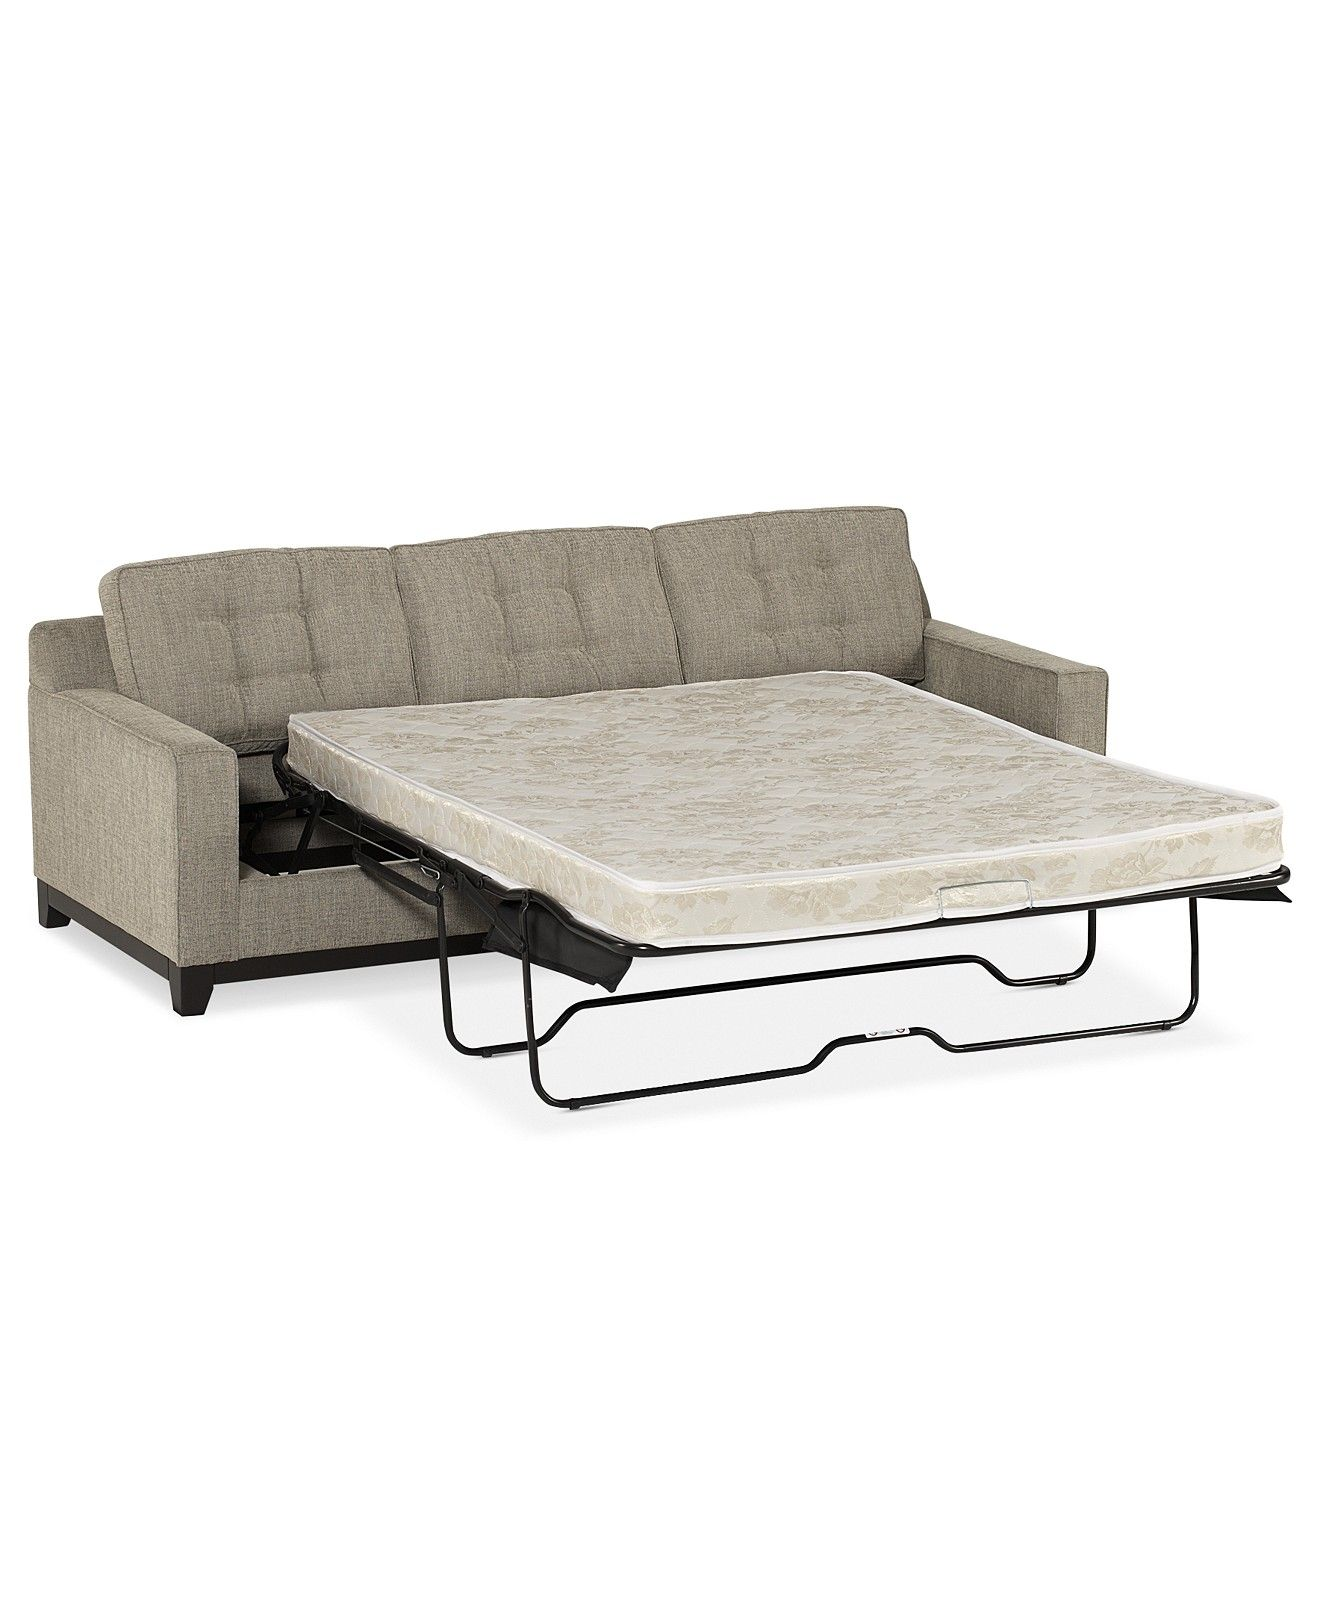 Clarke Fabric Queen Sleeper Sofa Bed Couches Sofas Furniture Macy S Sofa Couch Bed Sofa Bed Queen